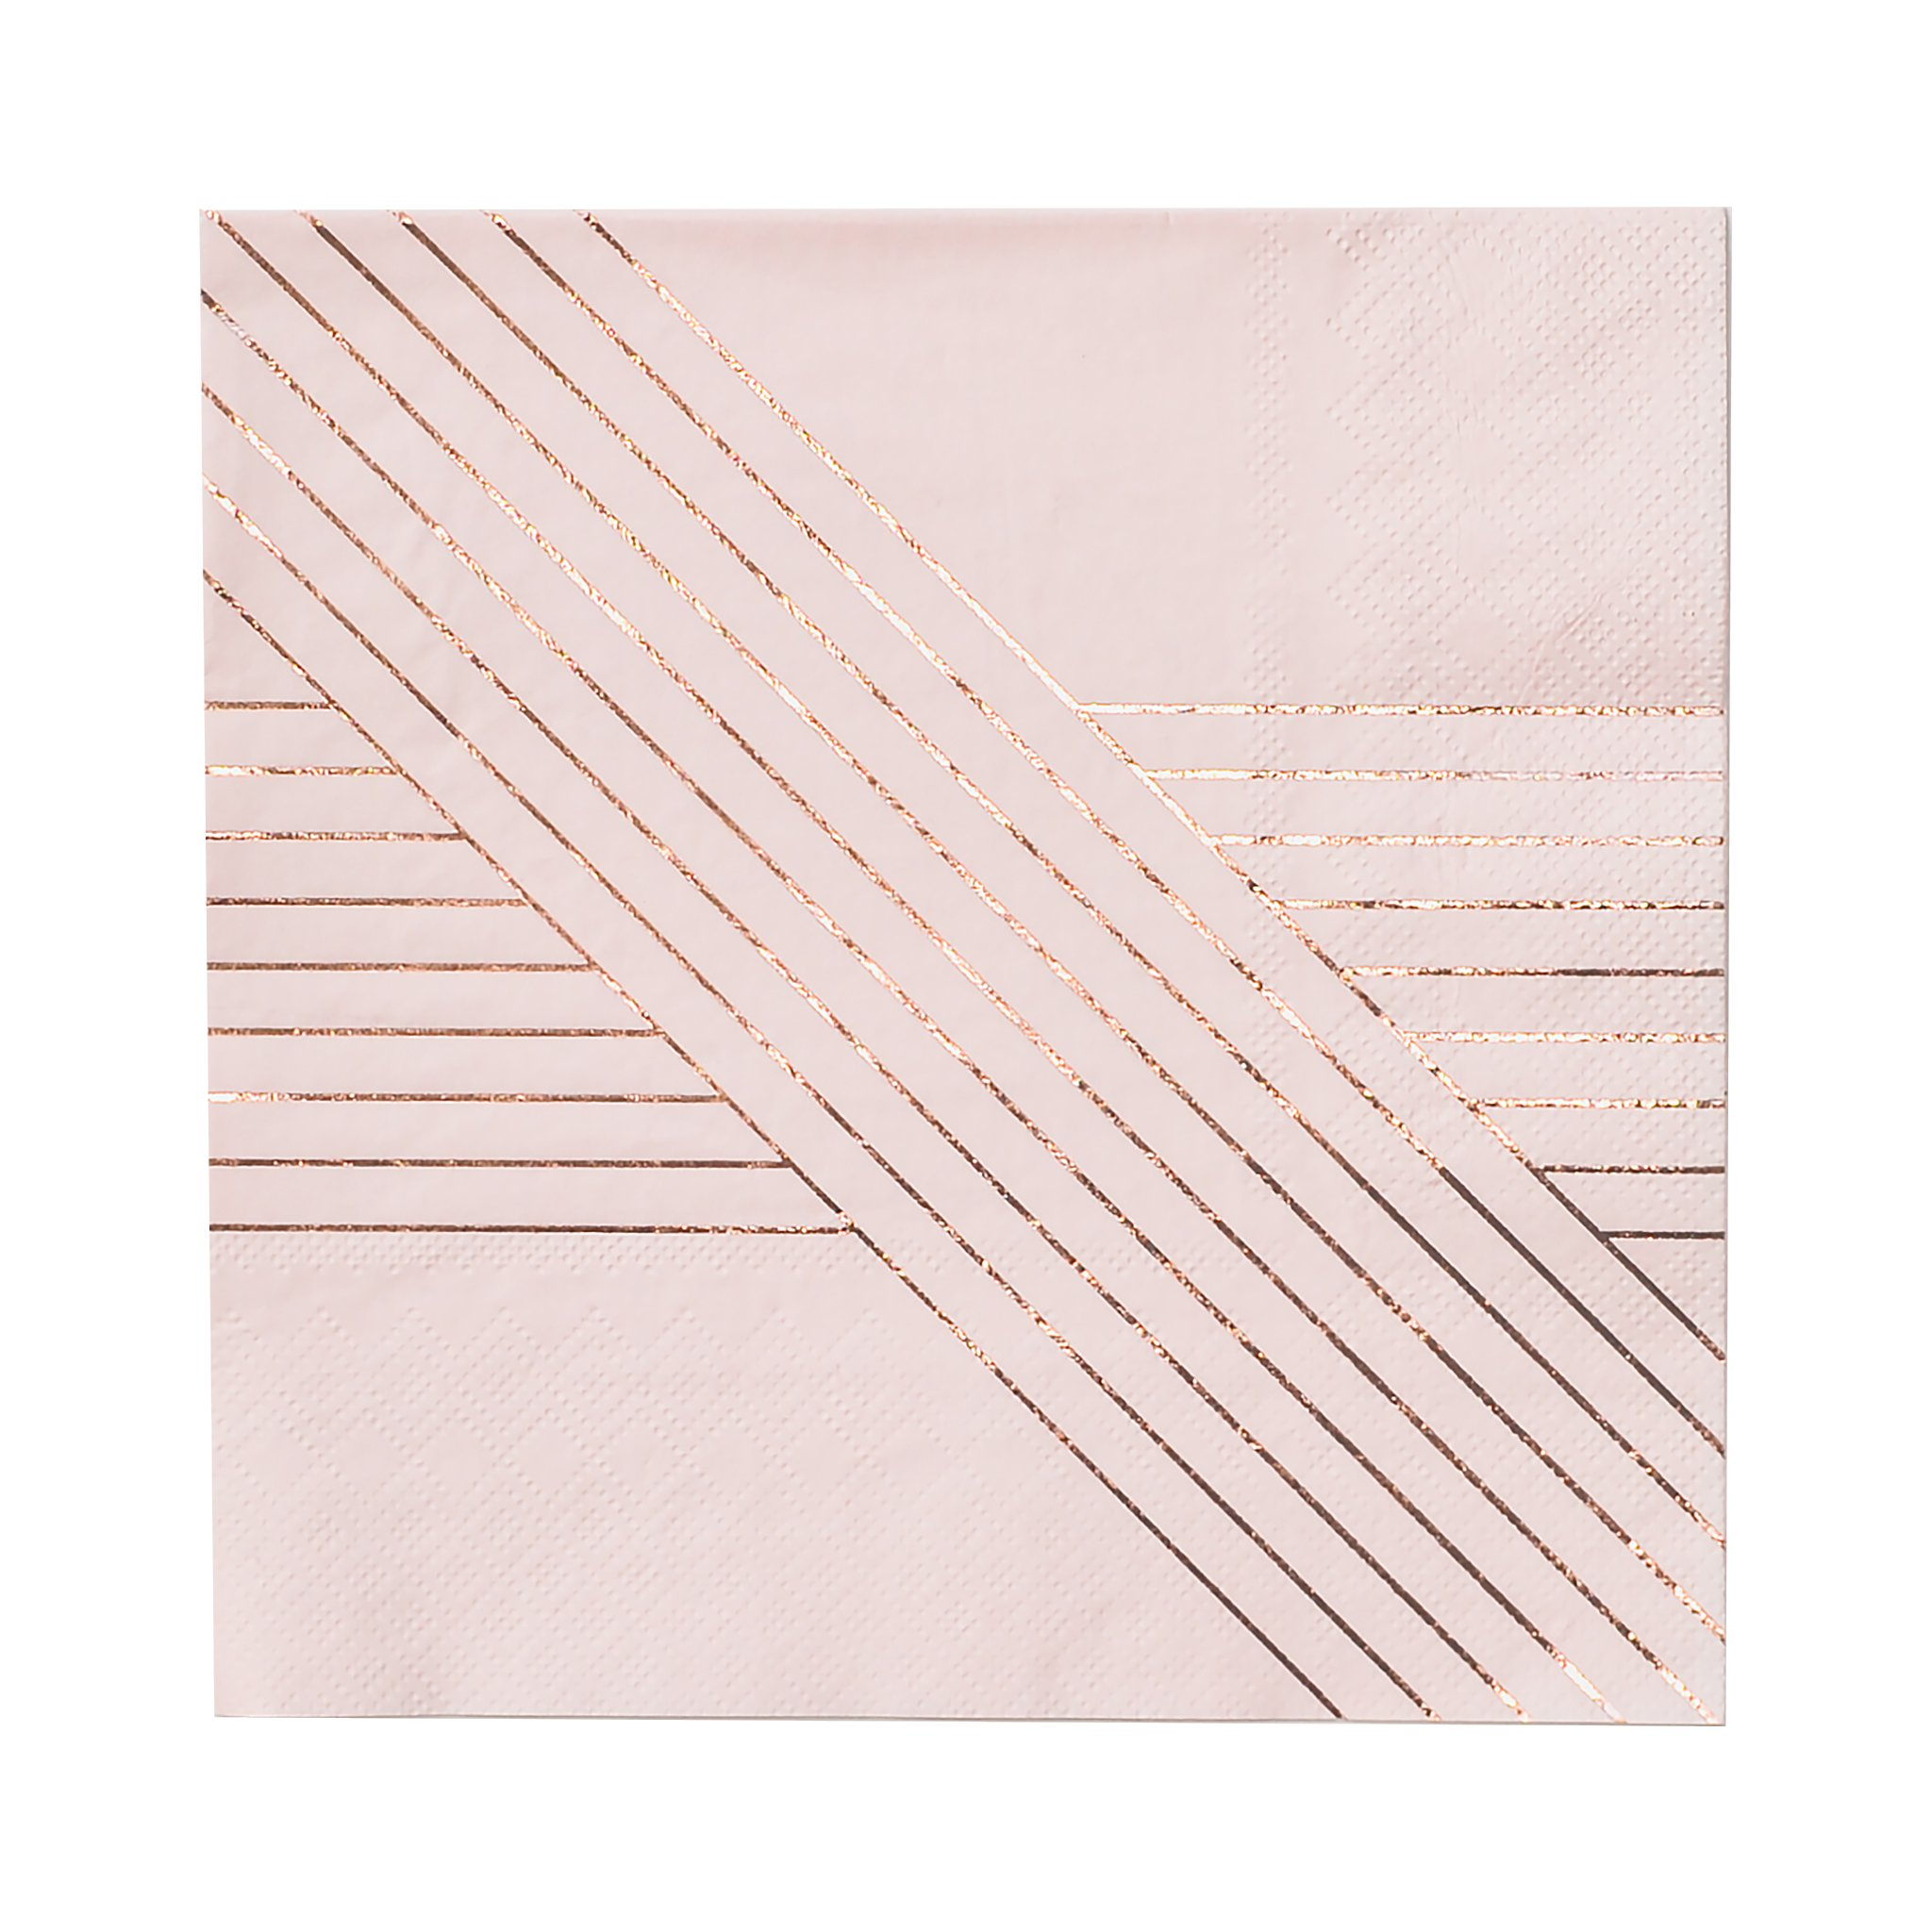 Harlow & Grey Pale Pink w Rose Gold Striped Lunch Paper Napkins - Birthday, Wedding, Showers Party Napkins Amethyst (20 Count) by Harlow & Grey